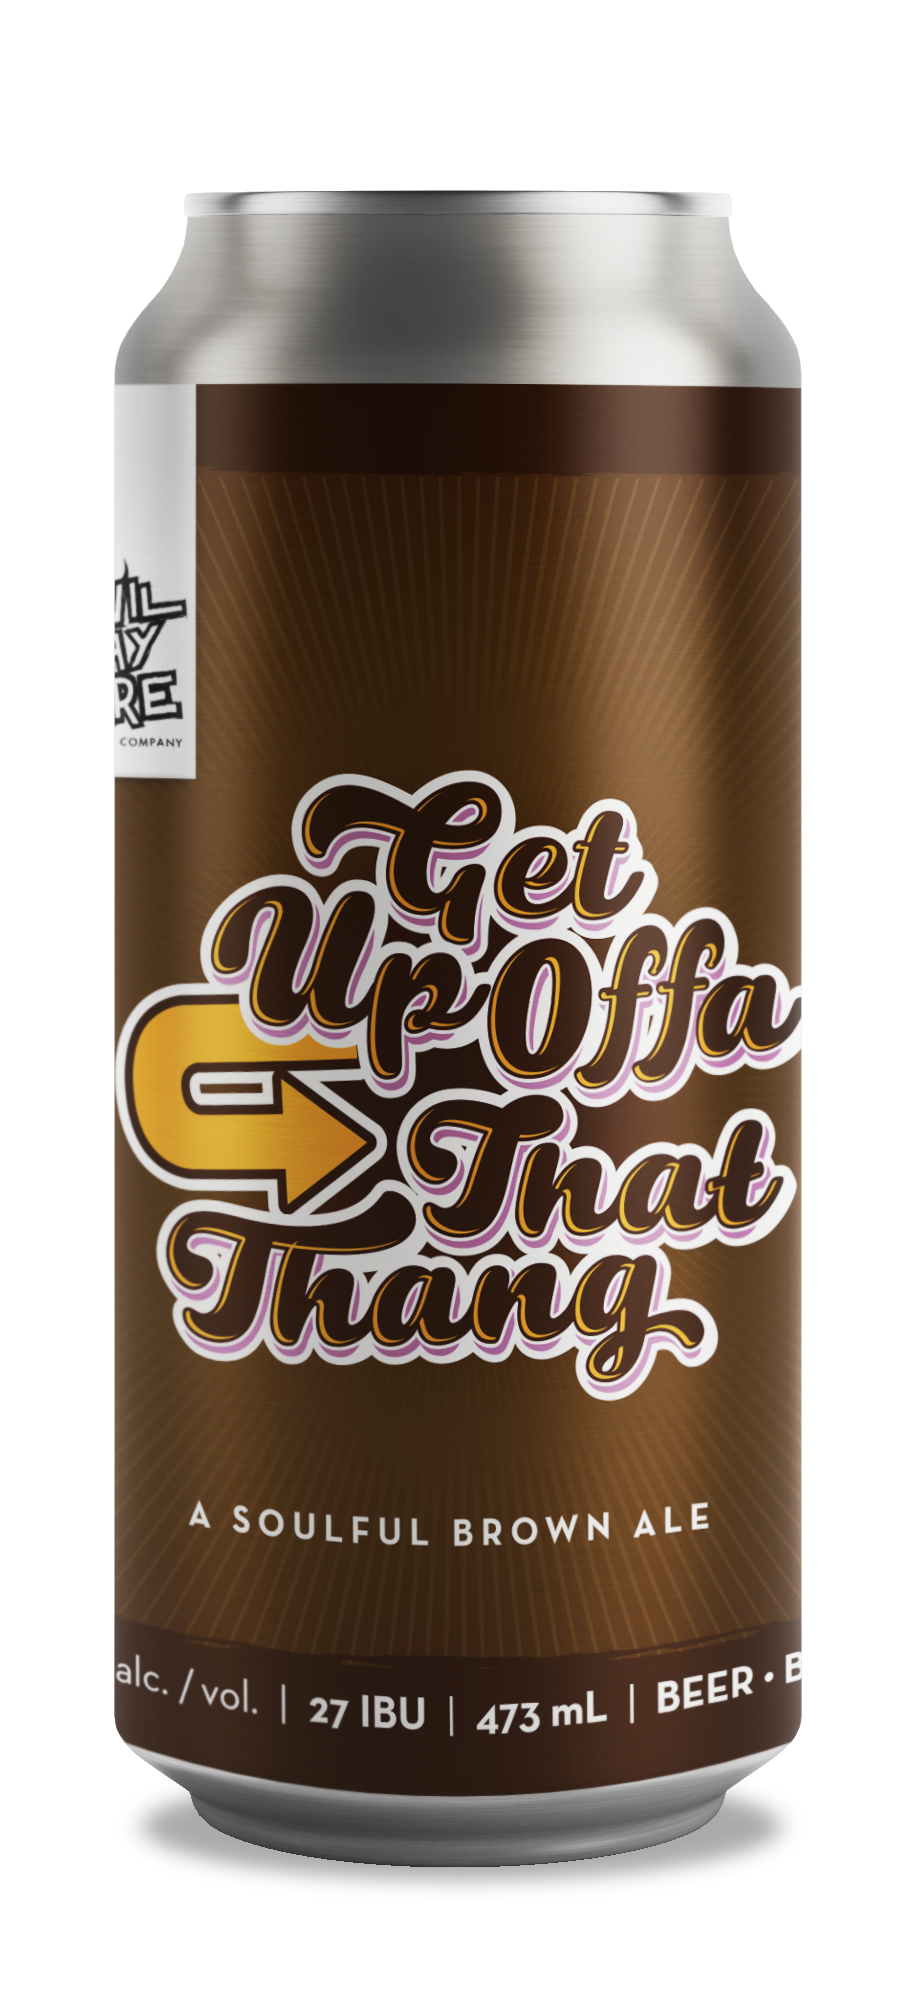 Can of Get Up Offa That Thang